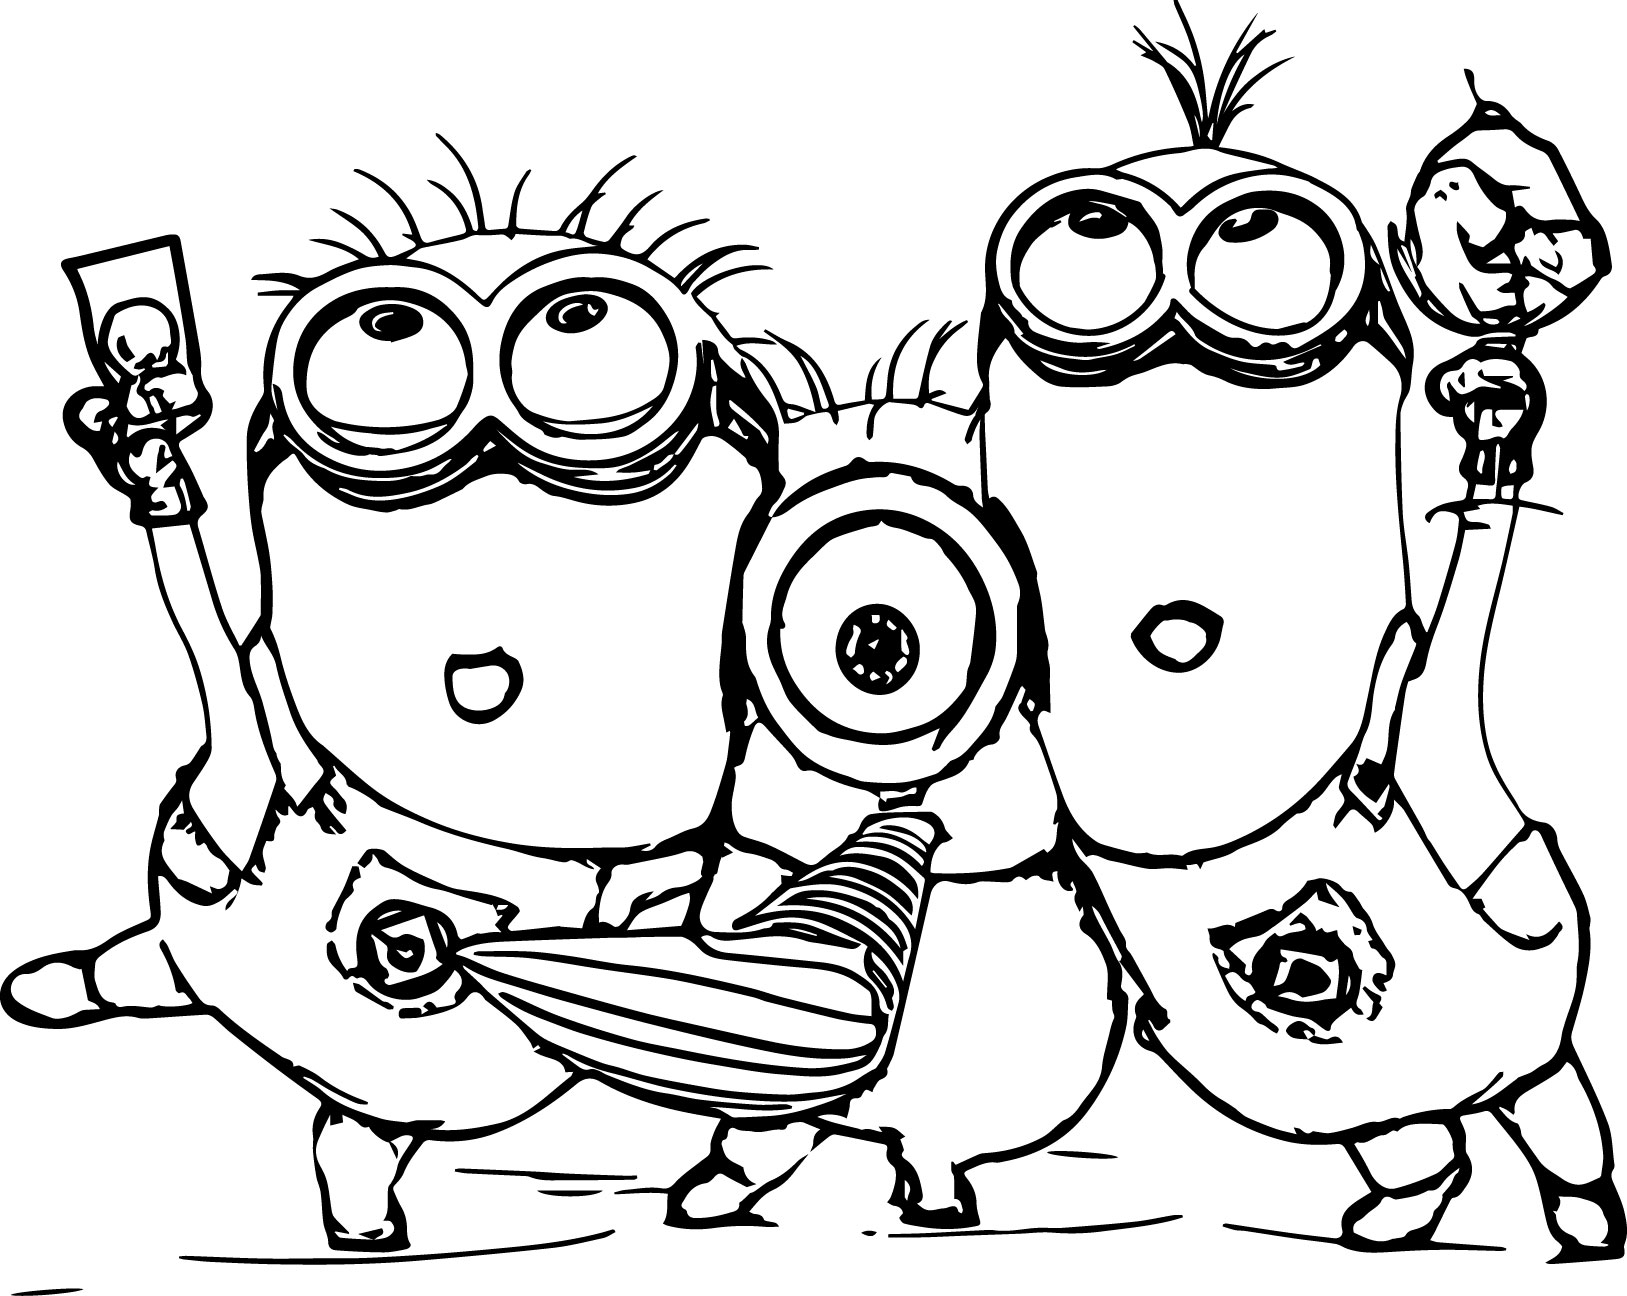 photo regarding Printable Minion Coloring Page named Minion Coloring Web pages - Least complicated Coloring Webpages For Children